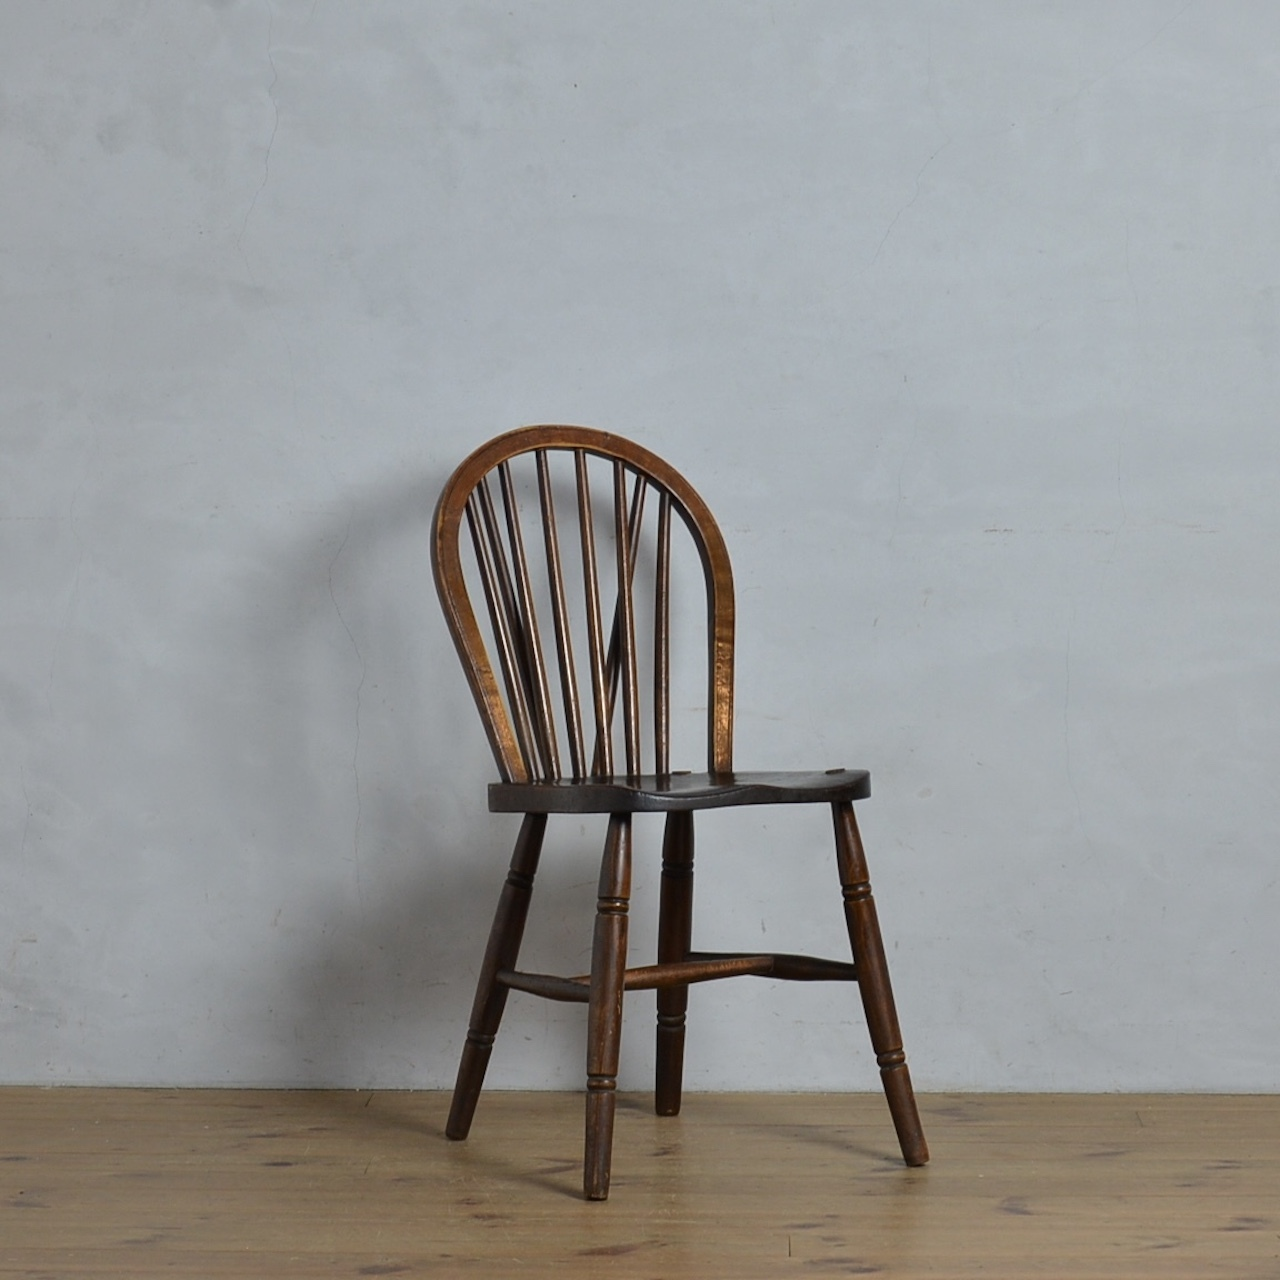 Kitchen Chair  / キッチン チェア【F】〈ダイニングチェア・ウィンザーチェア・アンティーク・ヴィンテージ〉112320